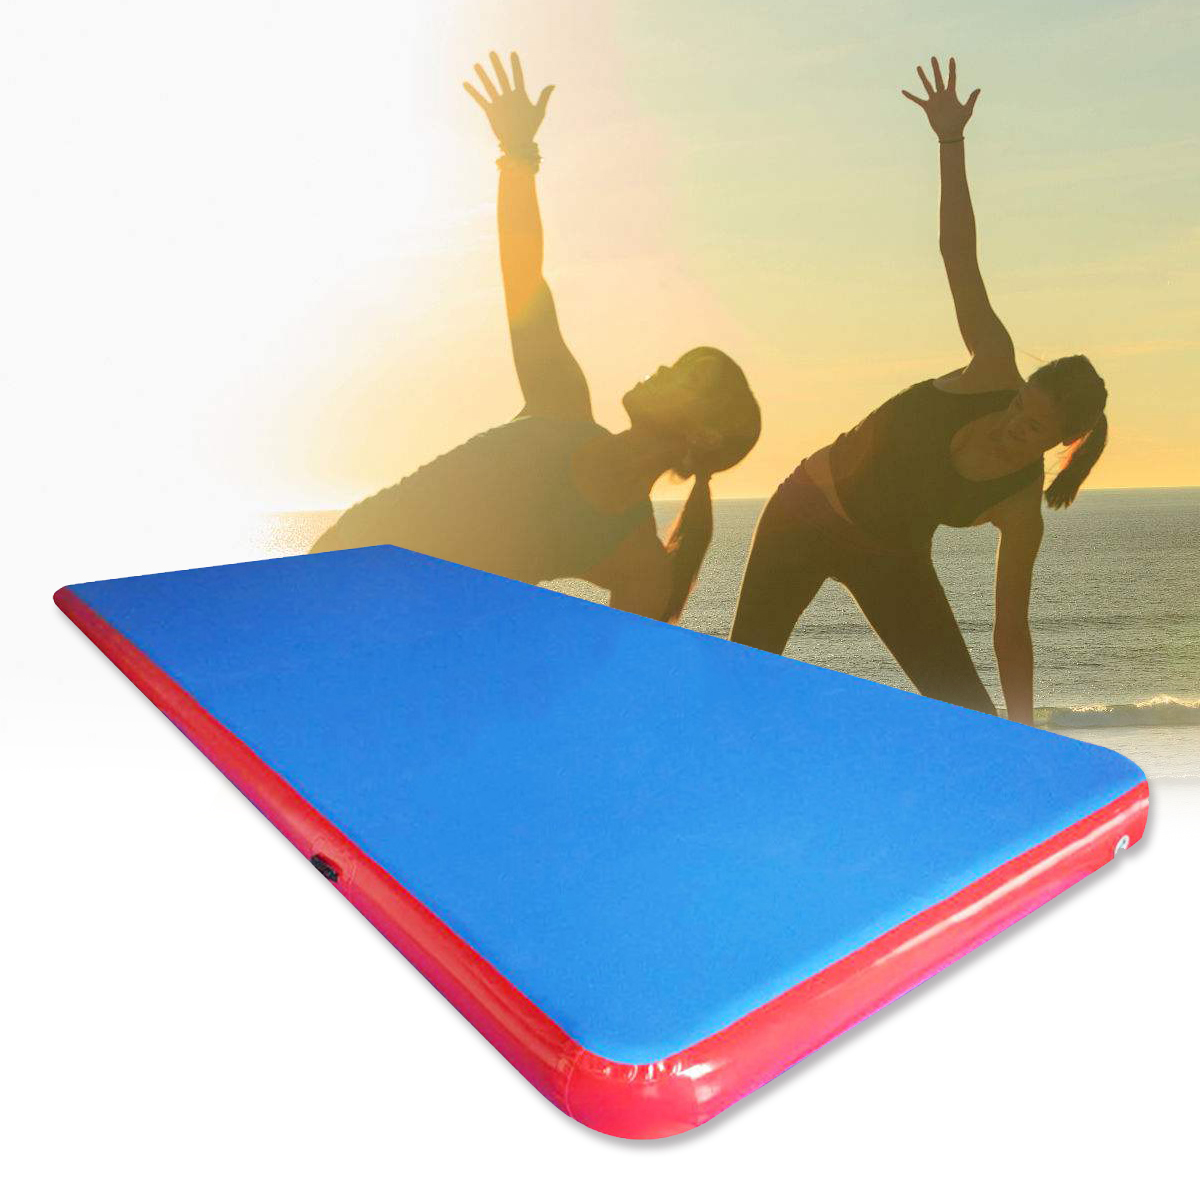 196x78.7x3.94inch Inflatable Air Track Mat Outdoor Sports Gymnastics Fitness Training Yoga Pad